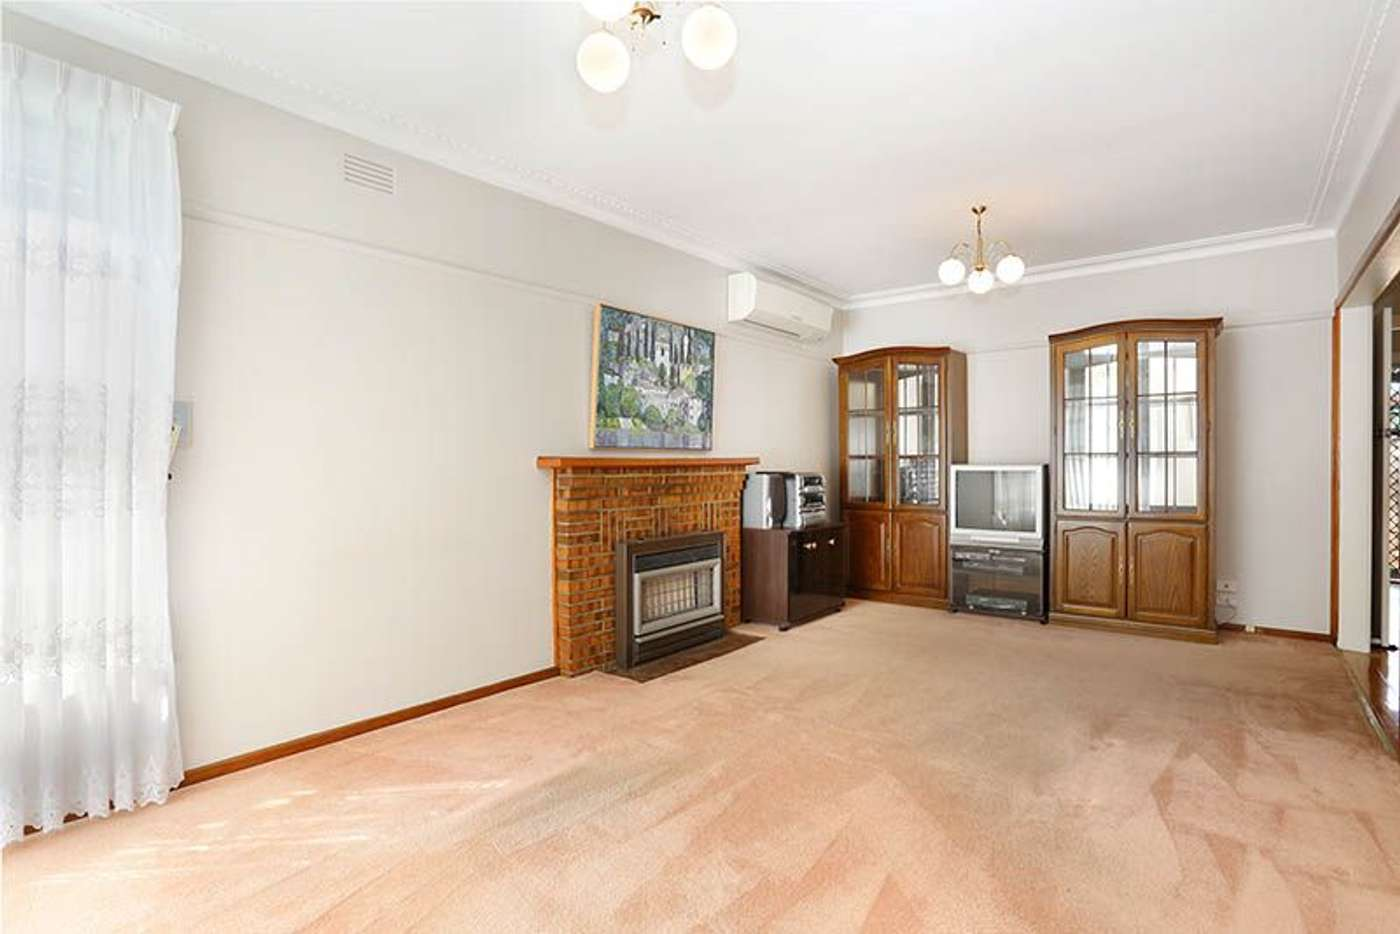 Sixth view of Homely house listing, 40 Higinbotham Street, Coburg VIC 3058